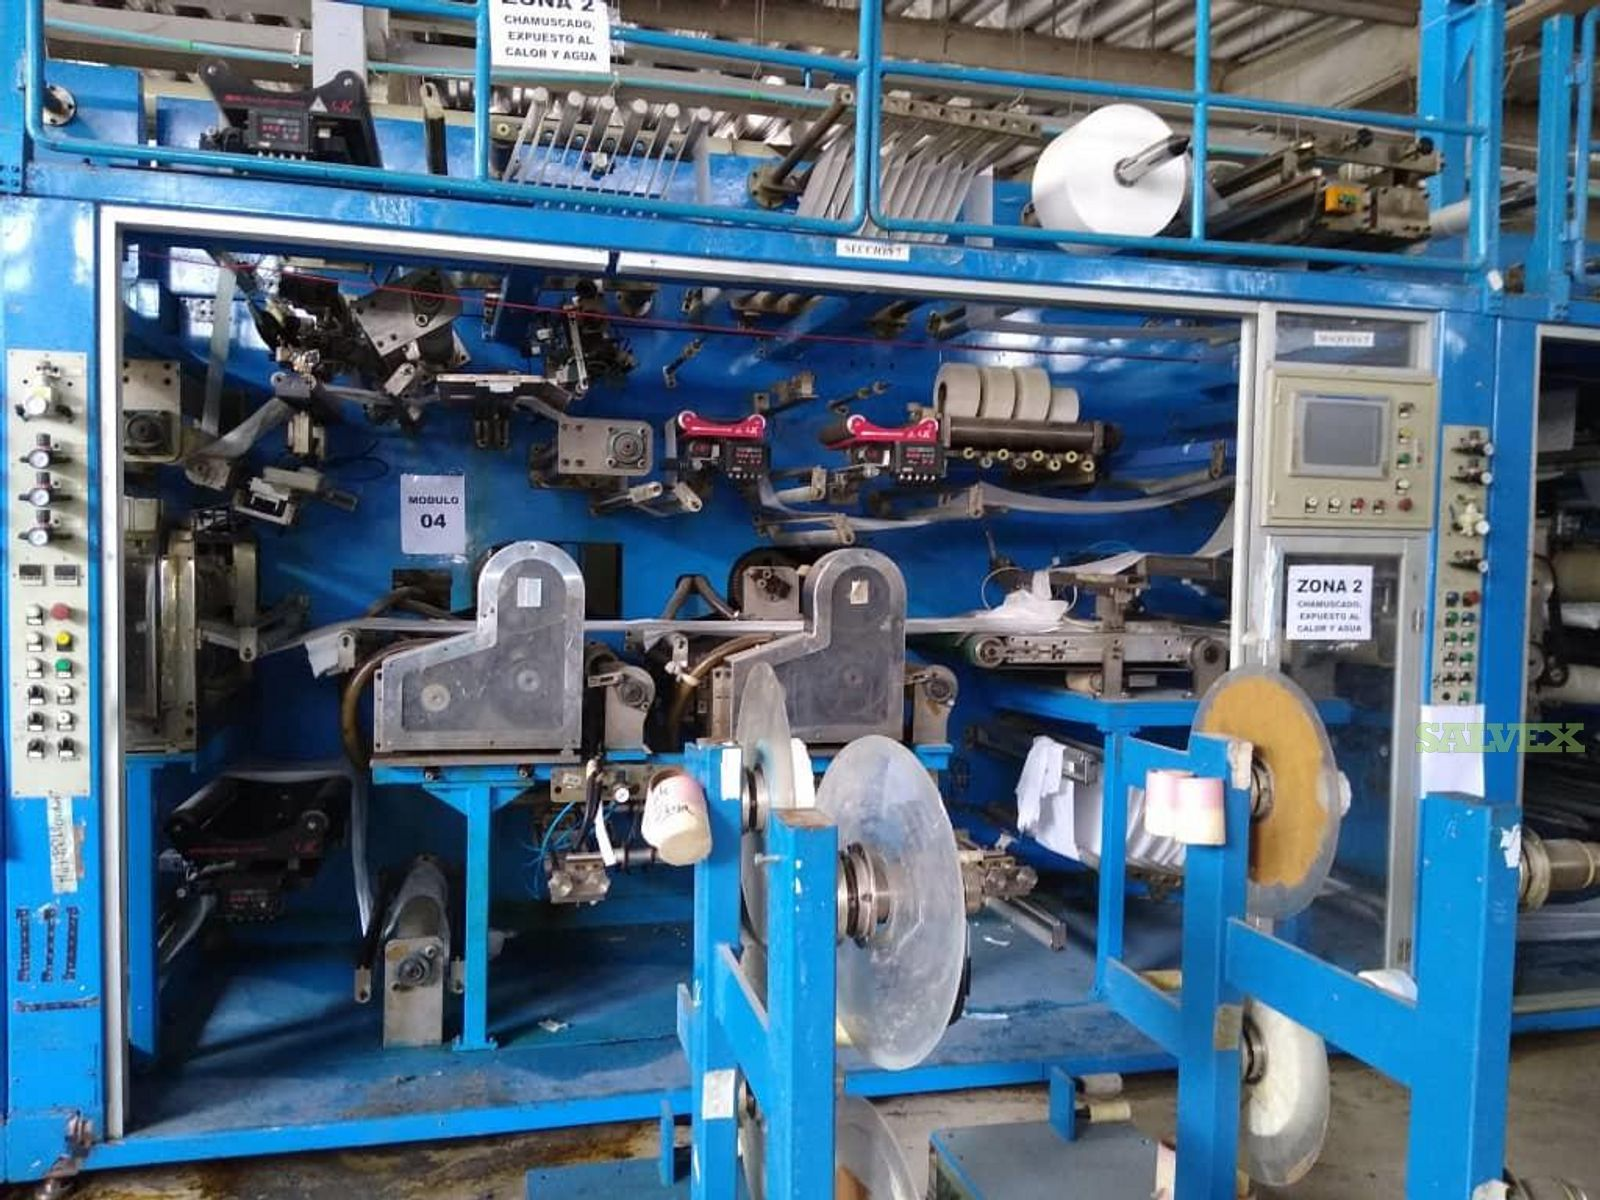 Adult Diaper Manufacturing Line (Partial Fire Damage)